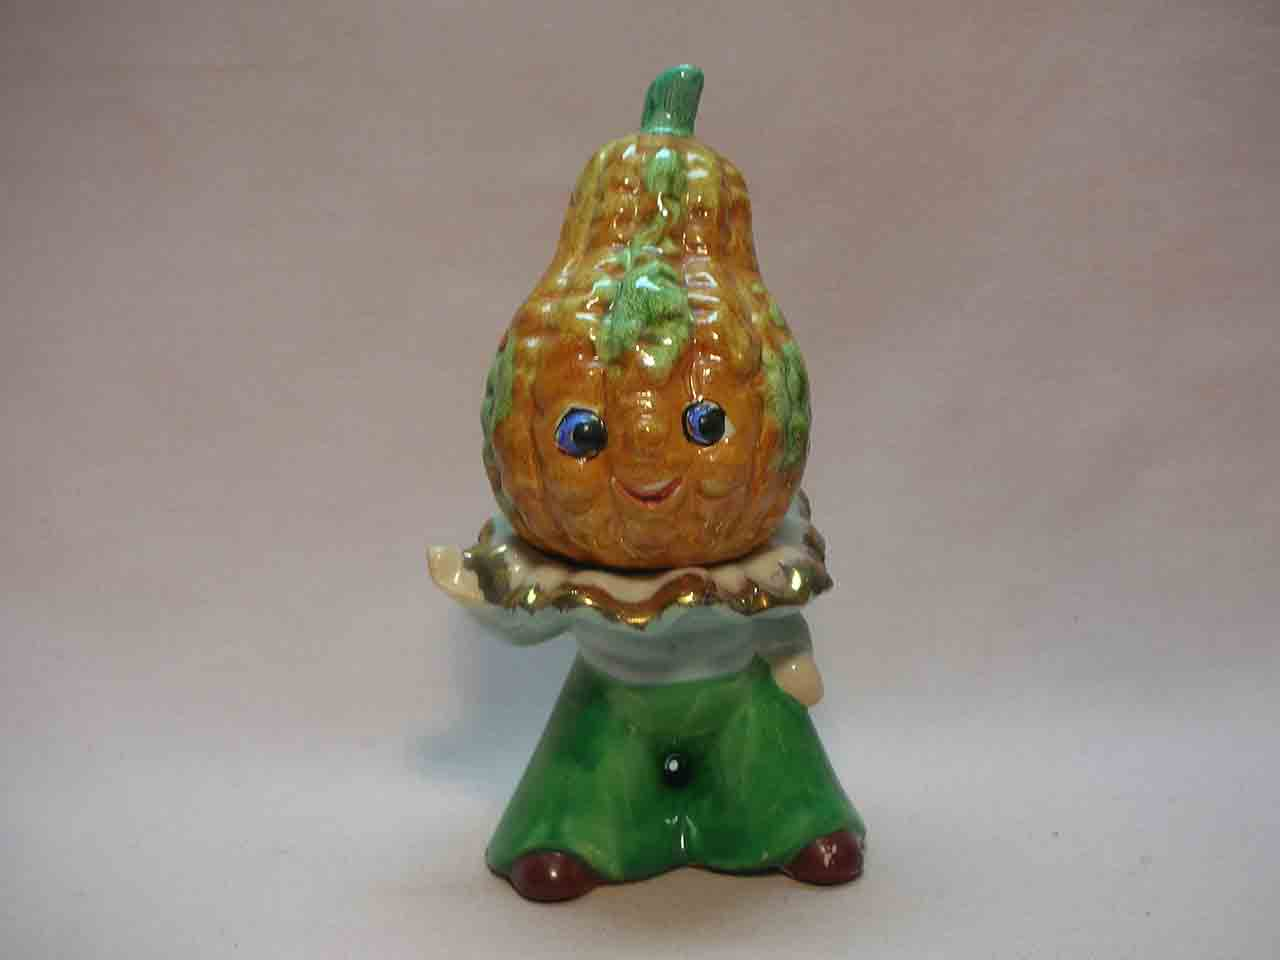 Anthropomorphic stacking squash salt and pepper shakers